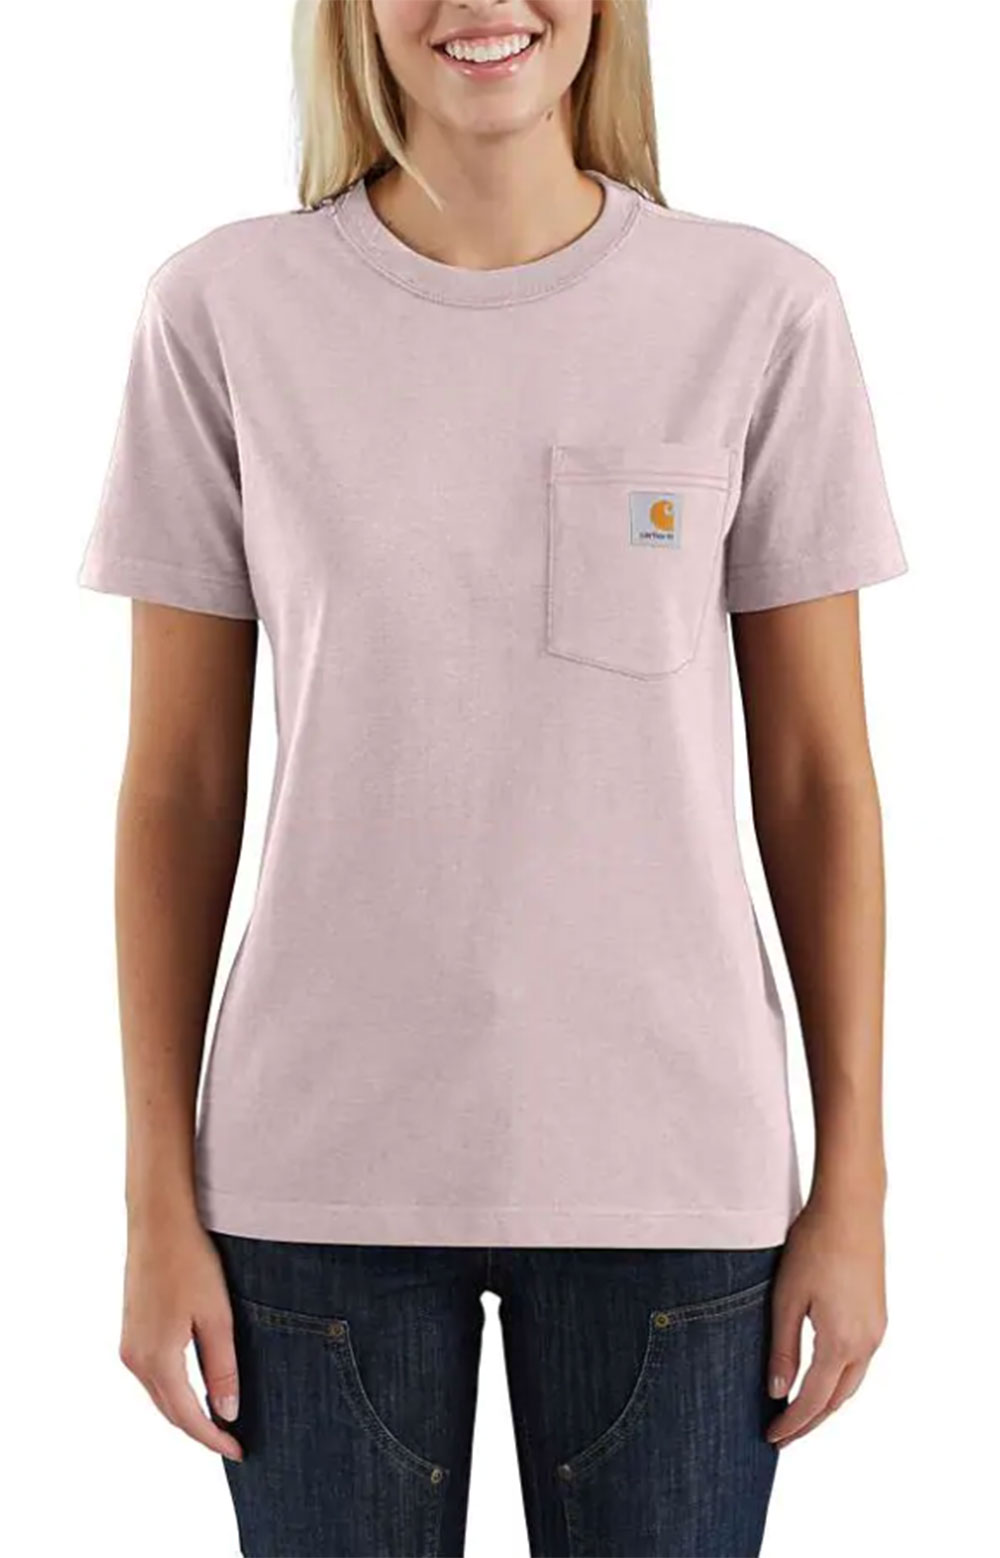 (104687) Loose Fit HW S/S Pocket Tried & True Graphic T-Shirt - Crepe Heather